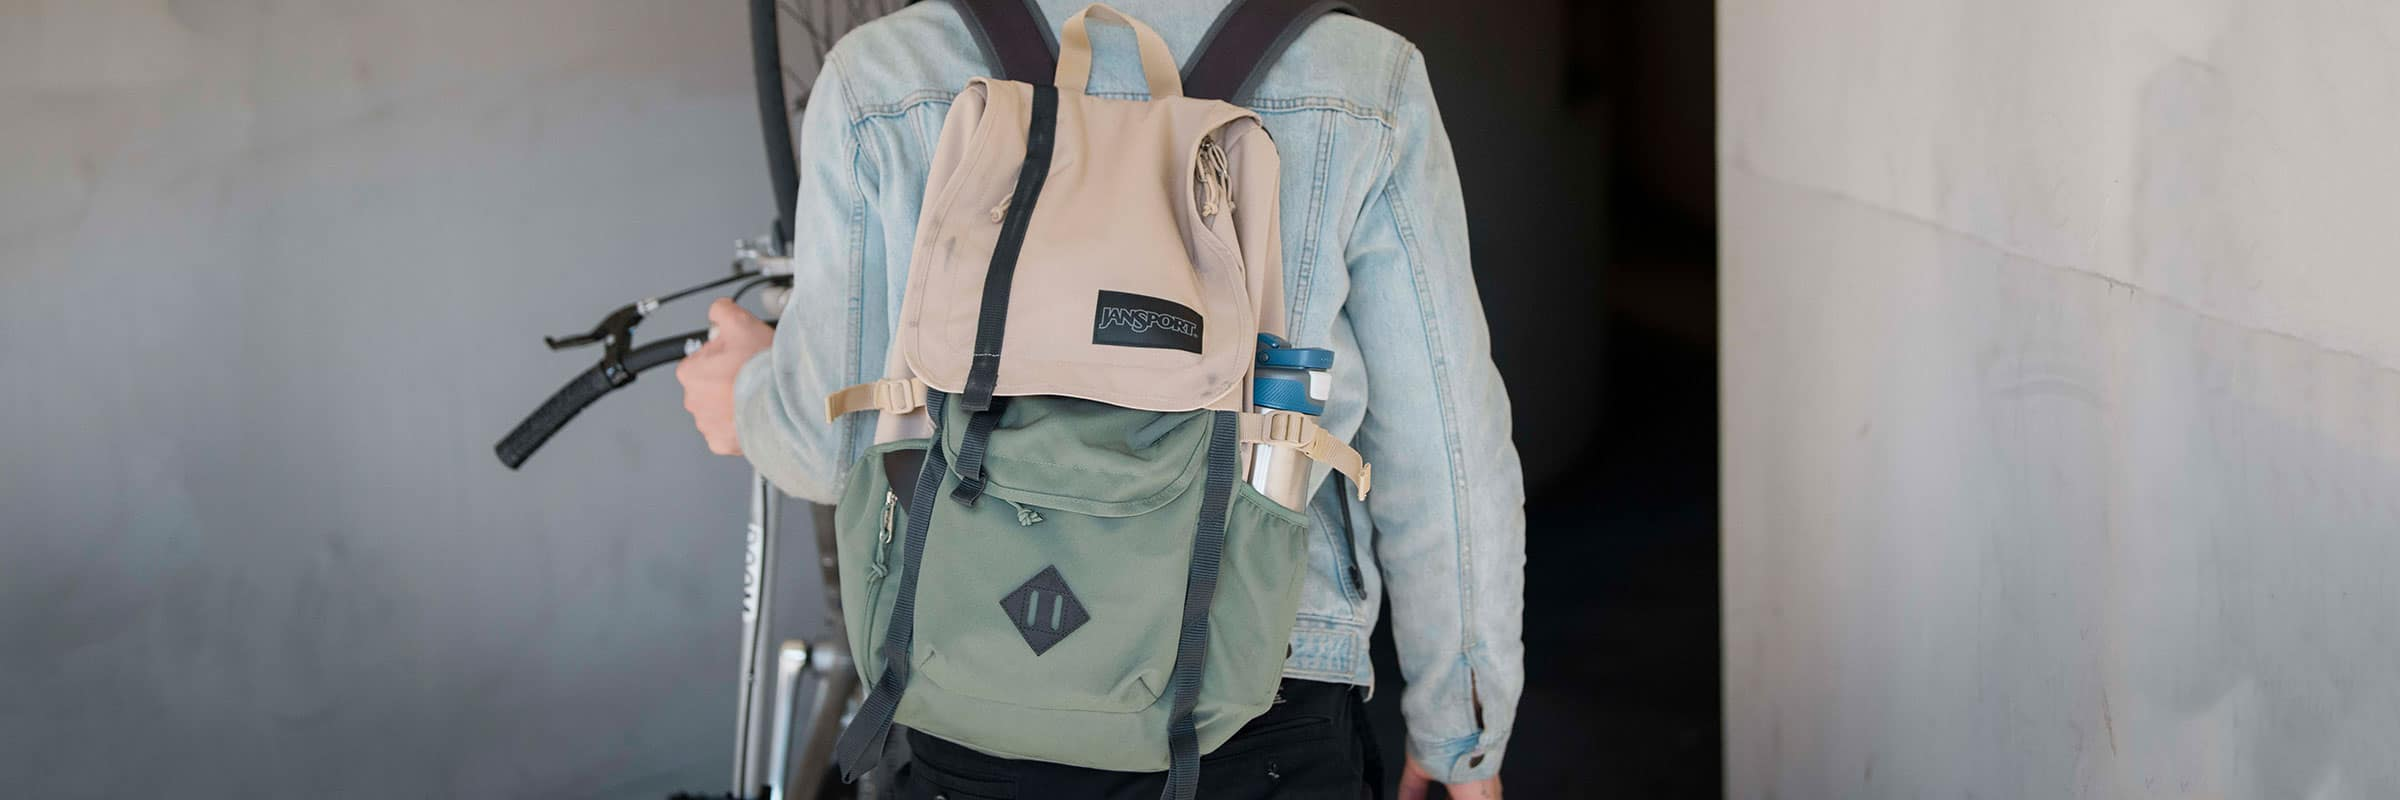 Backpacks. 5 Backpacks Made For the Urban Commuter